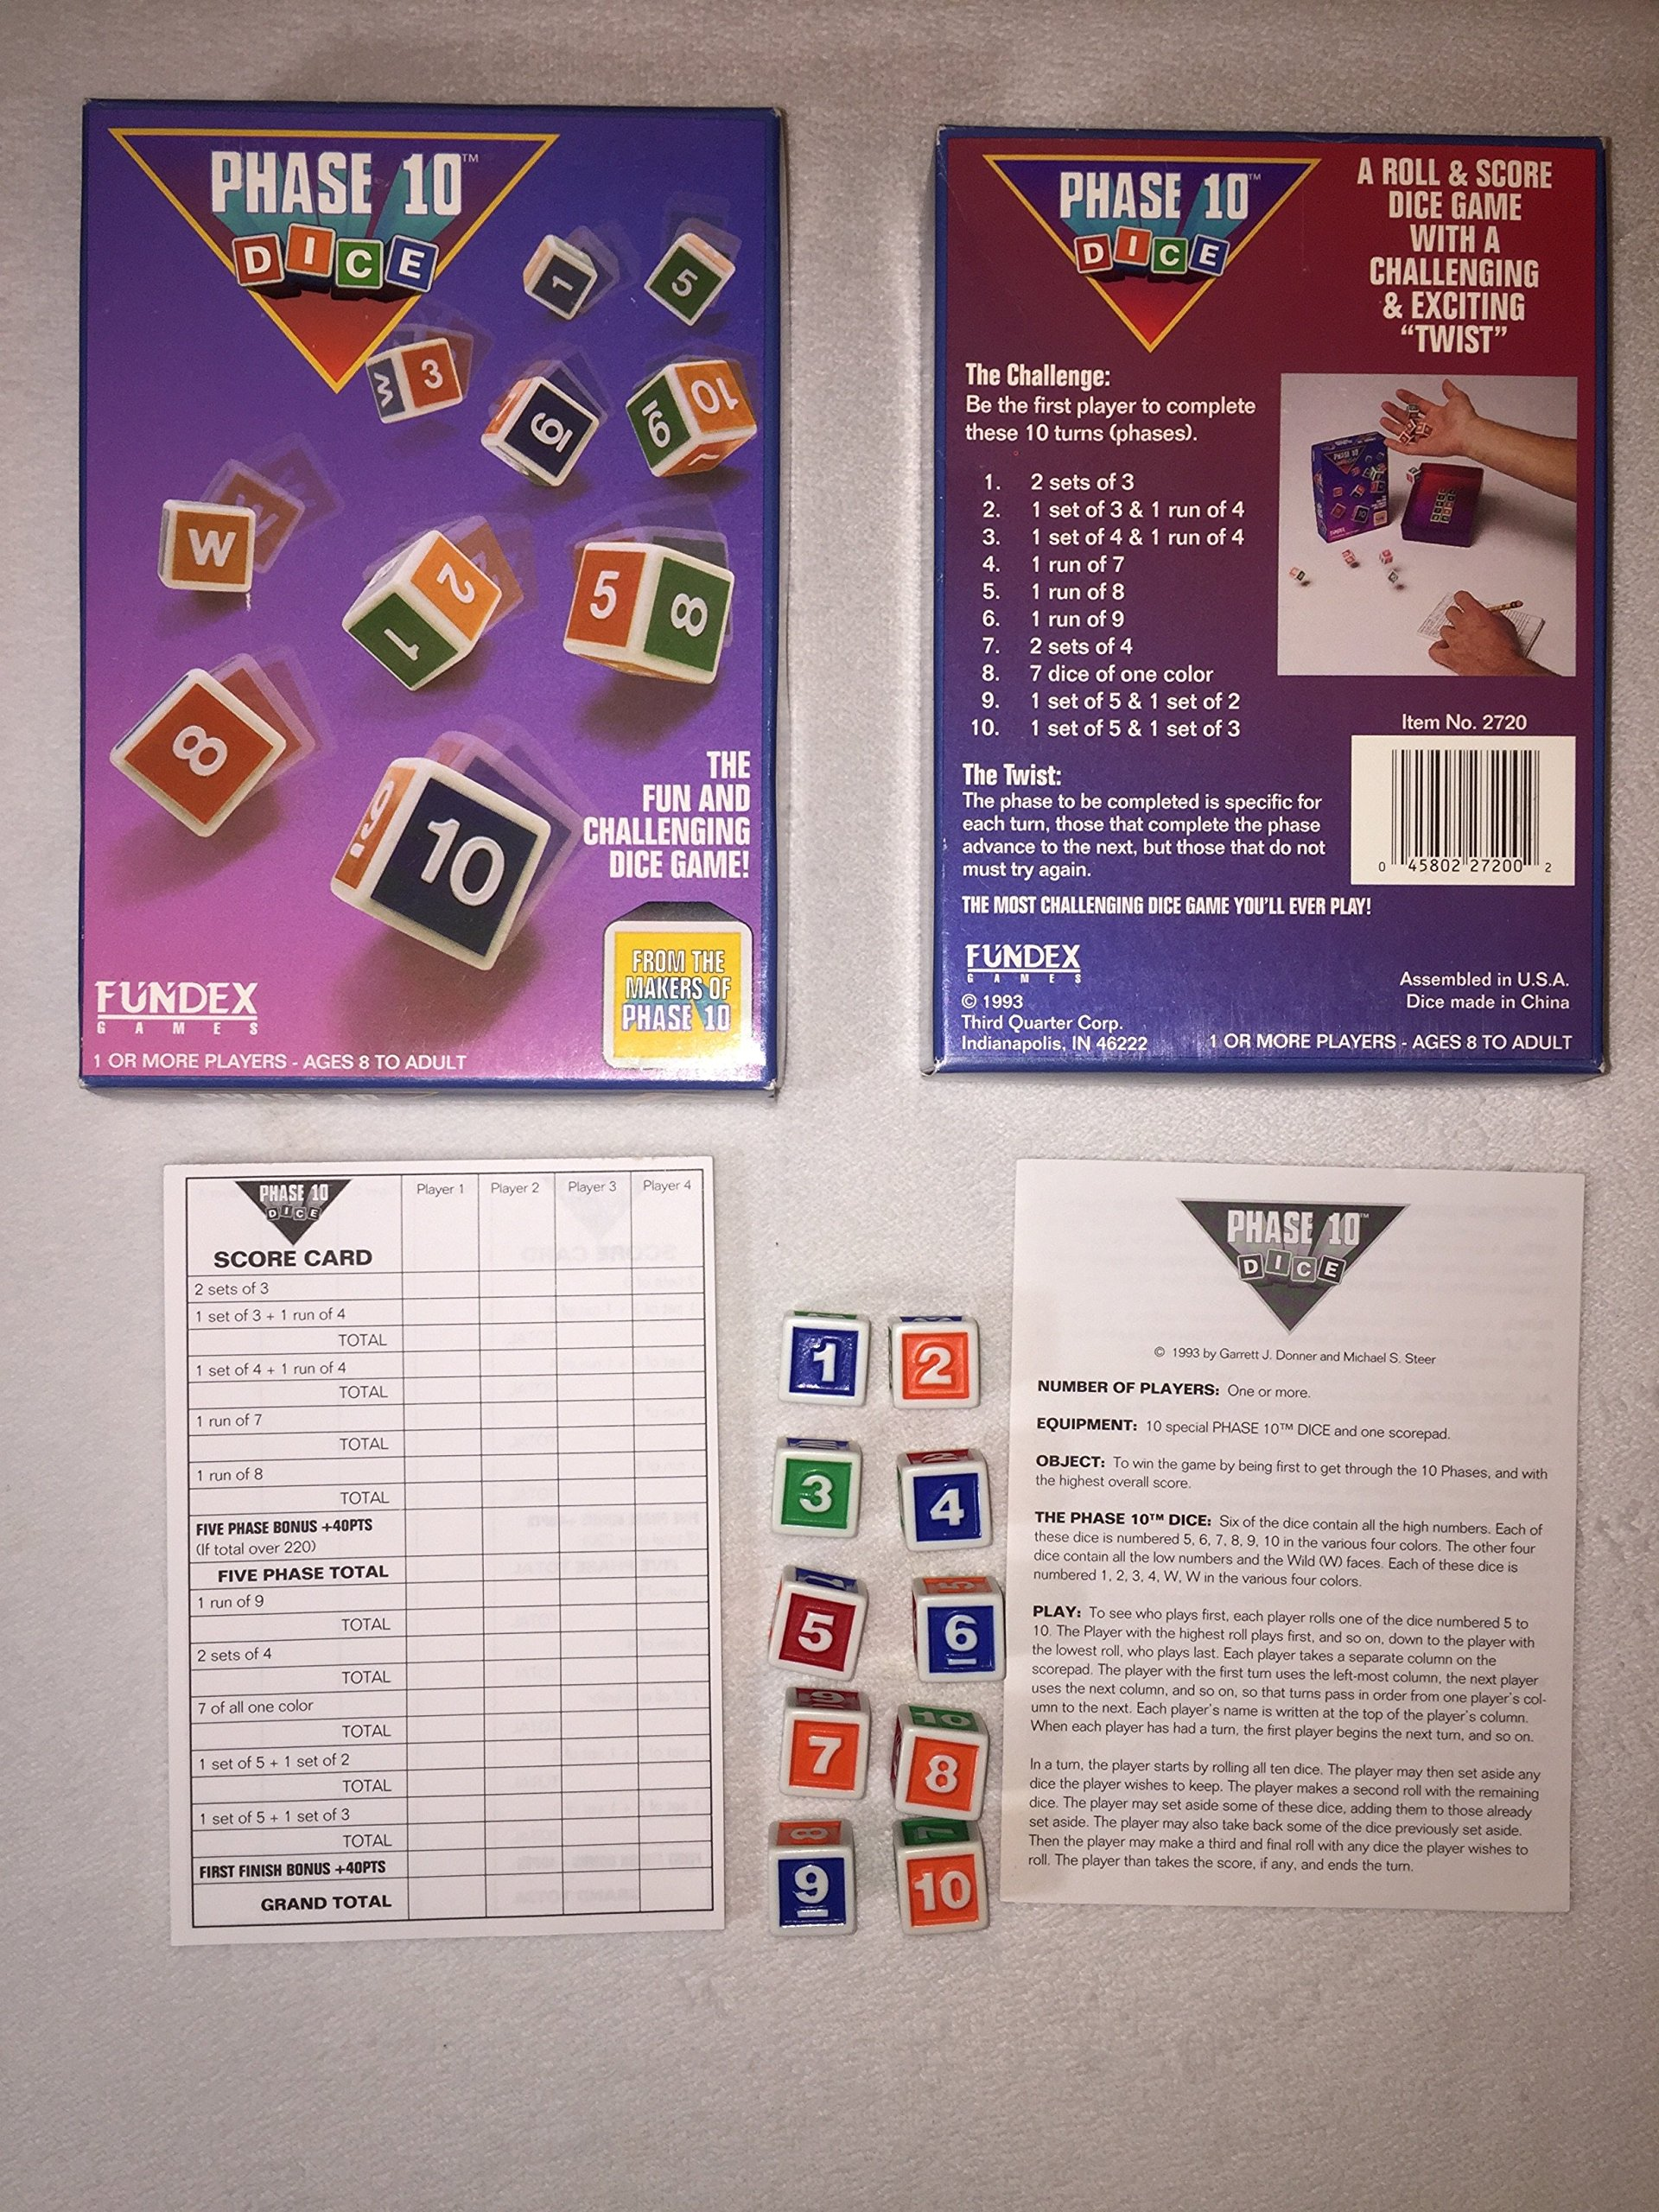 Phase 10 Dice; a Roll & Score Dice Game